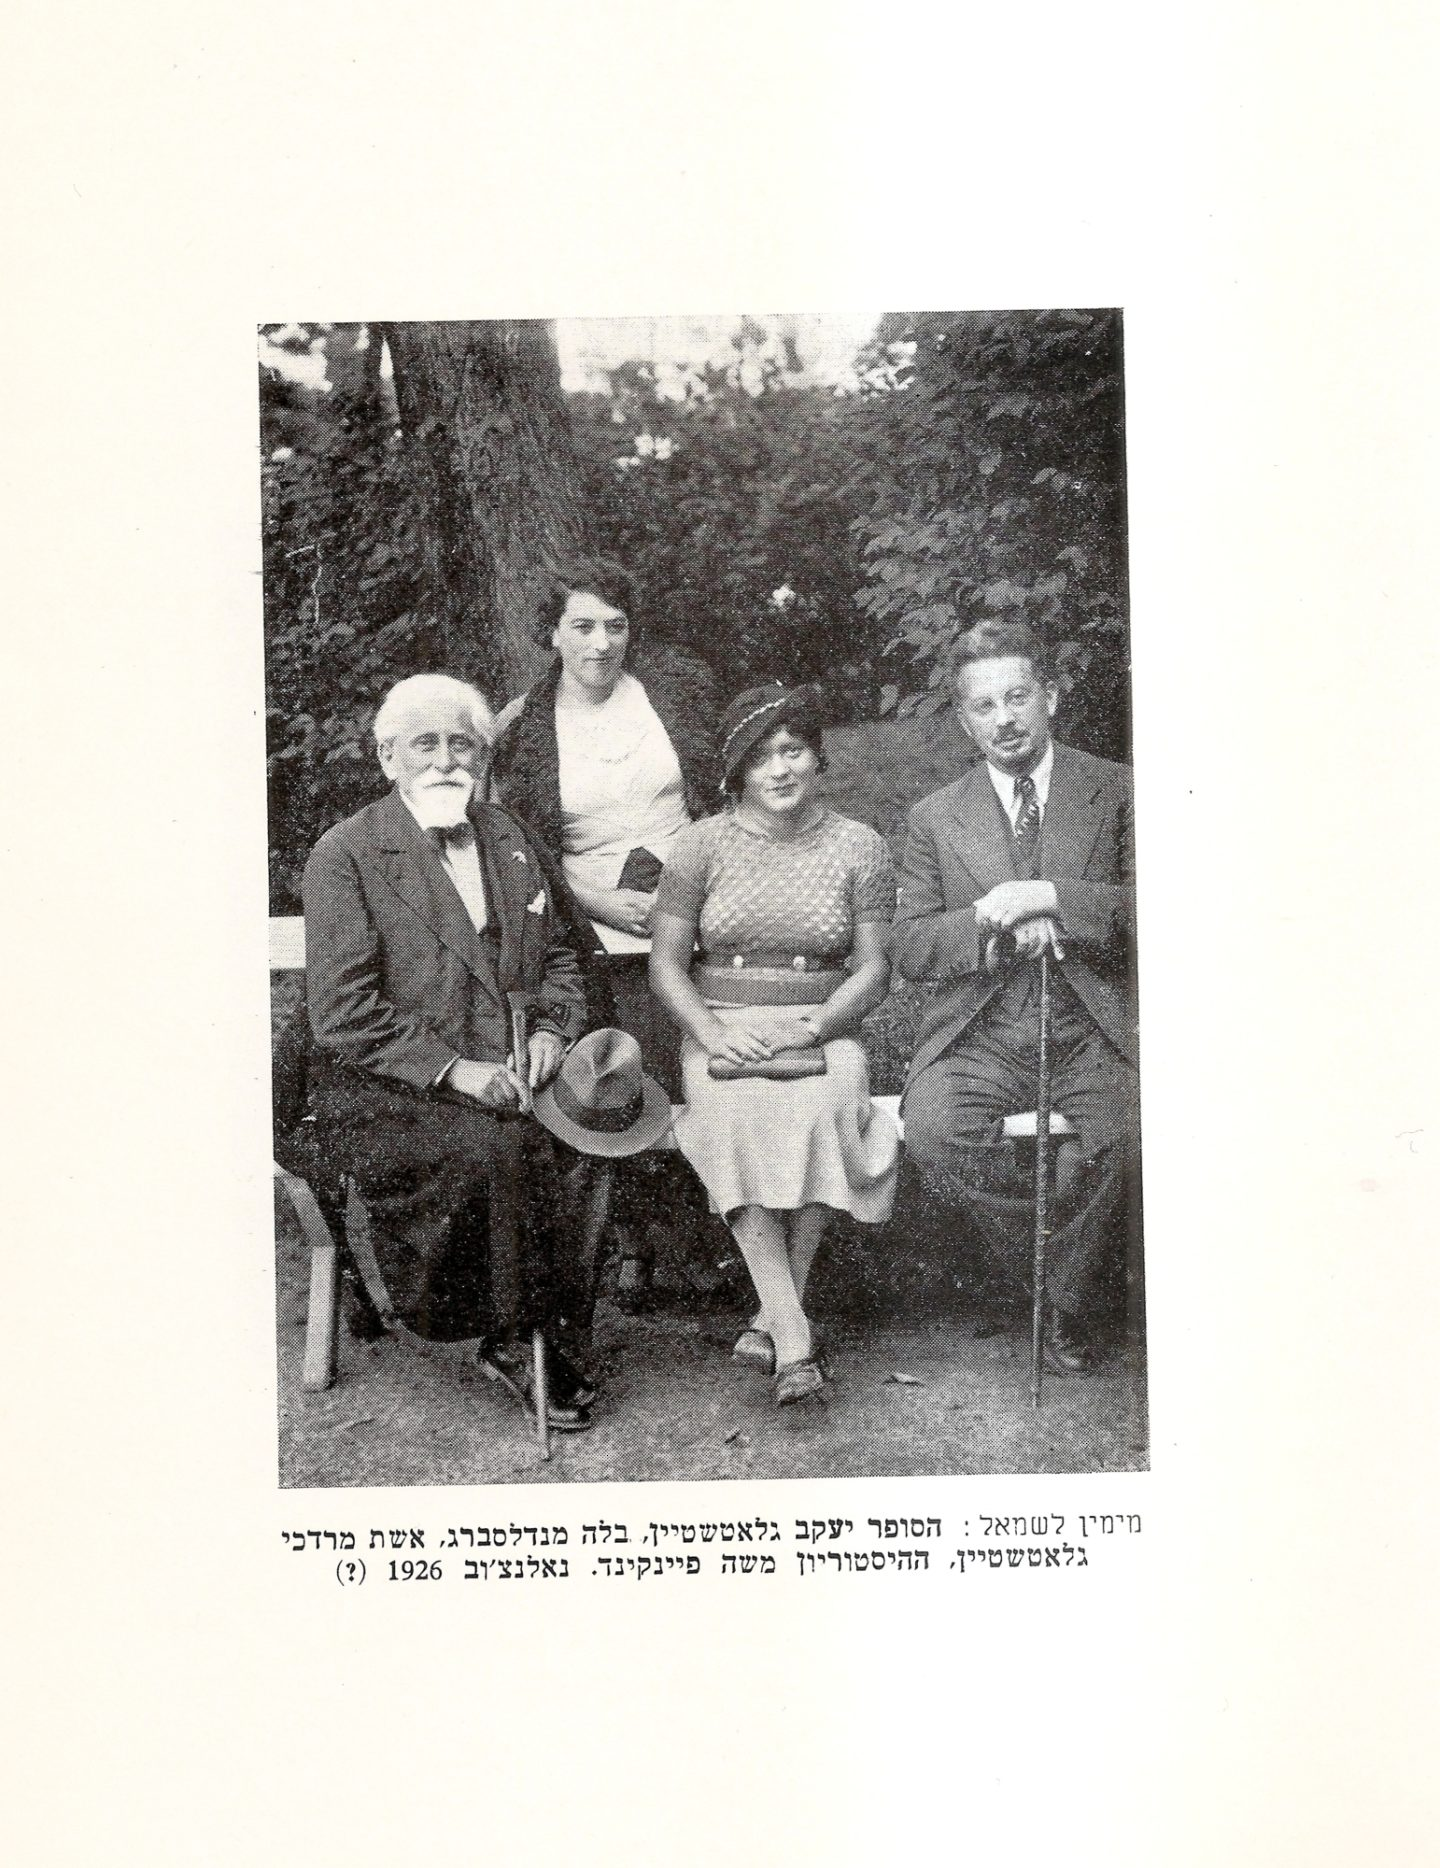 <p>From right to left: Jacob Glatstein, Bella Mandelsberg, Glatstein&#8217;s sister-in-law, and Moshe Feinkind, in Nałęczów, from Bella Mandelsberg-Schildkraut&#8217;s <em>Mekharim le-toldot Yehude Lublin</em> (Circle of Friends of the Late Bella Mandelsberg-Schildkraut:Tel-Aviv, 1965). Courtesy Monika&nbsp;Adamcyk-Garbowska.</p>